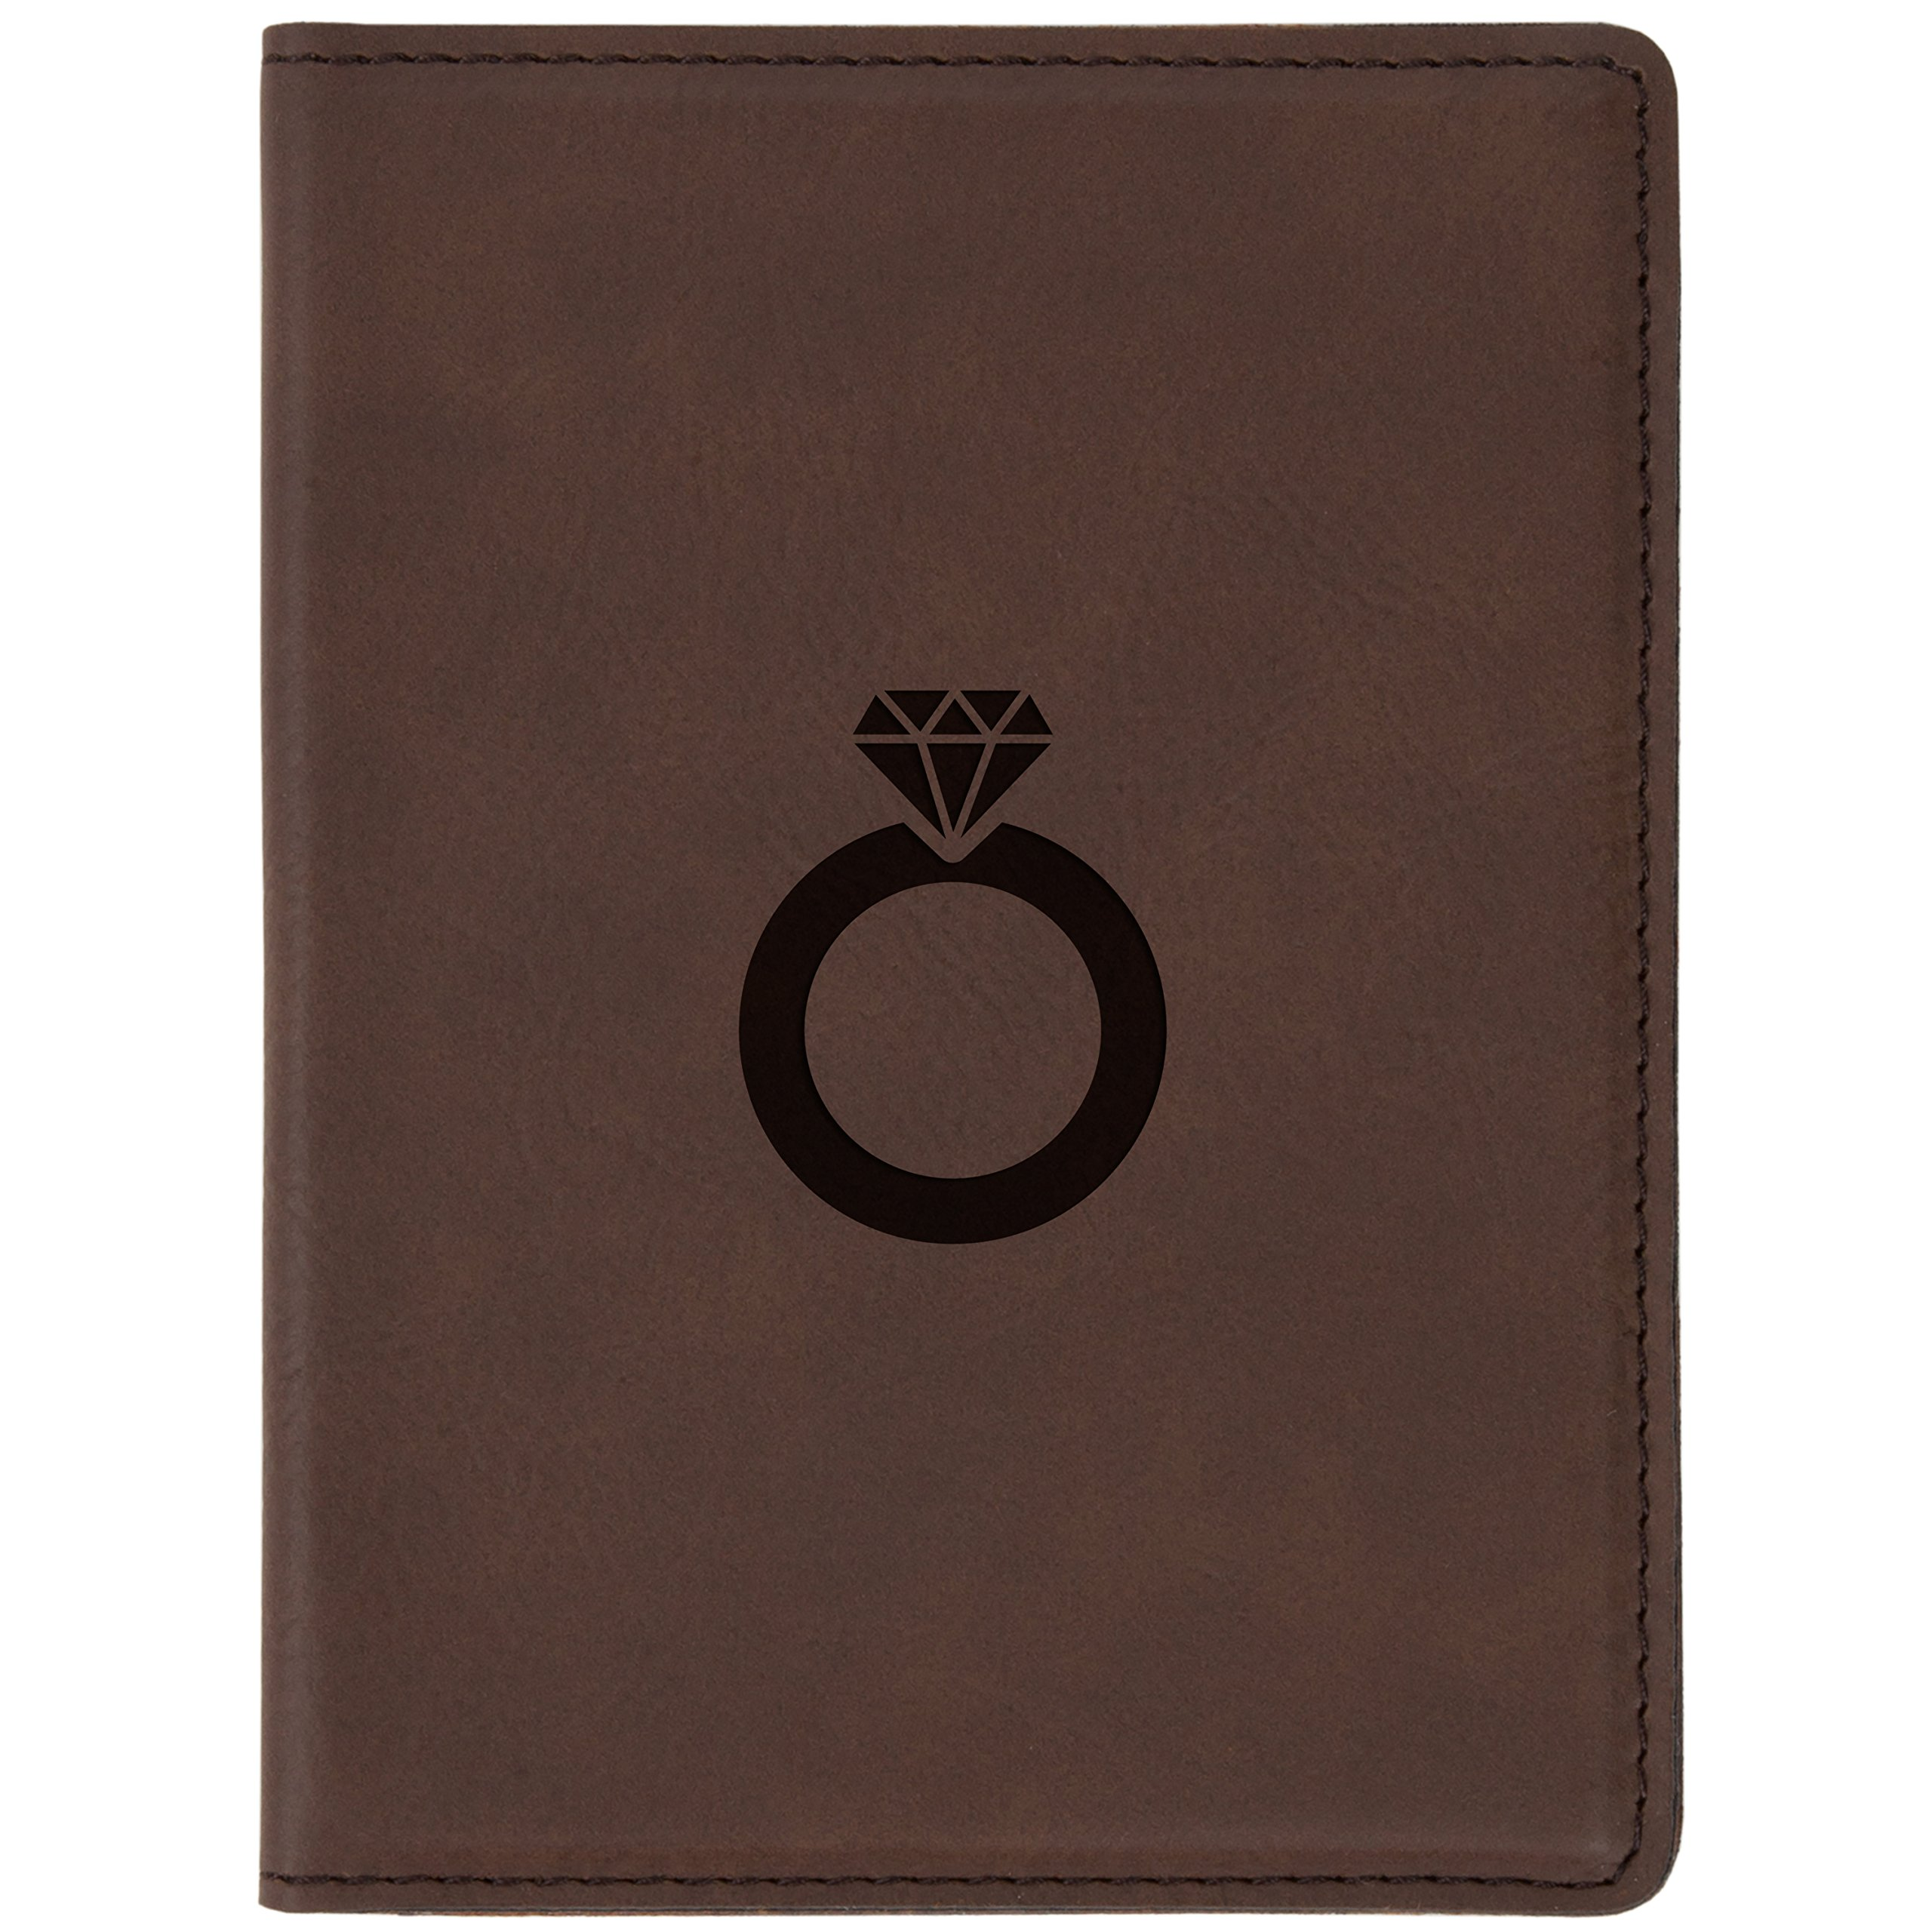 "Wedding Ring Brown Leather Passport Holder - Laser Etched Design - 4 X 5.5"" Engraved Passport Holder For Women And Men"